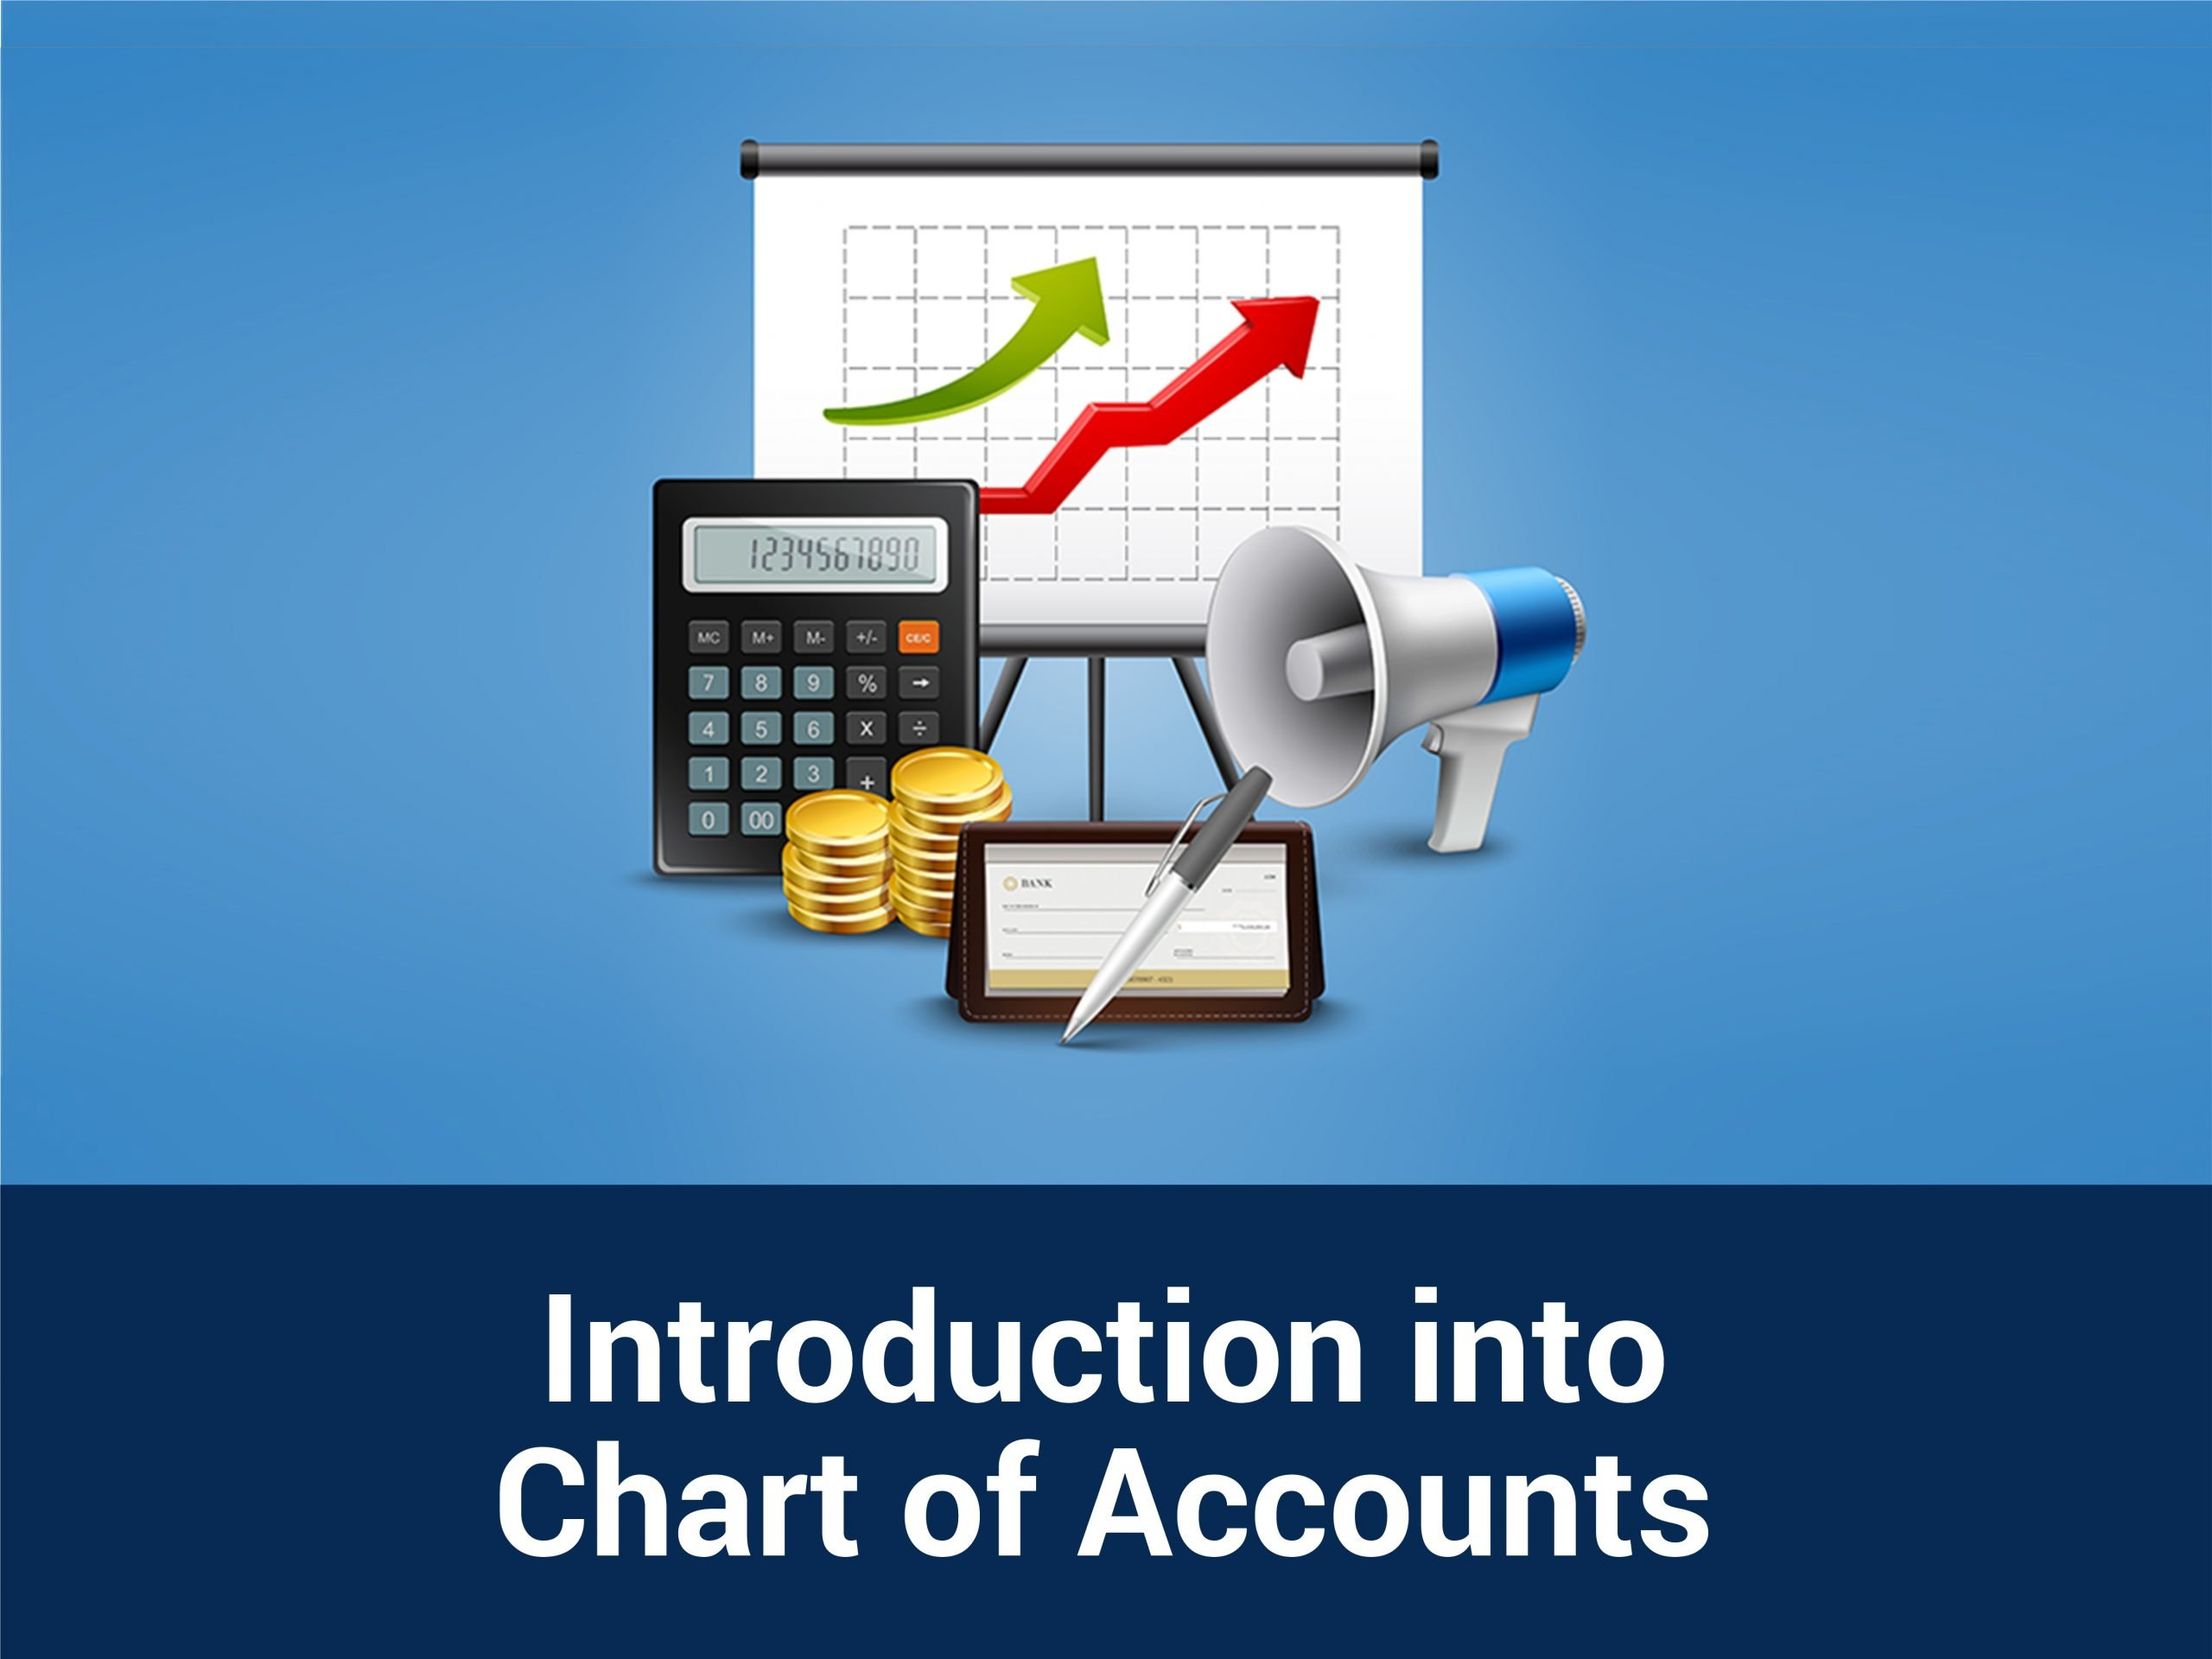 cahrts of accounts